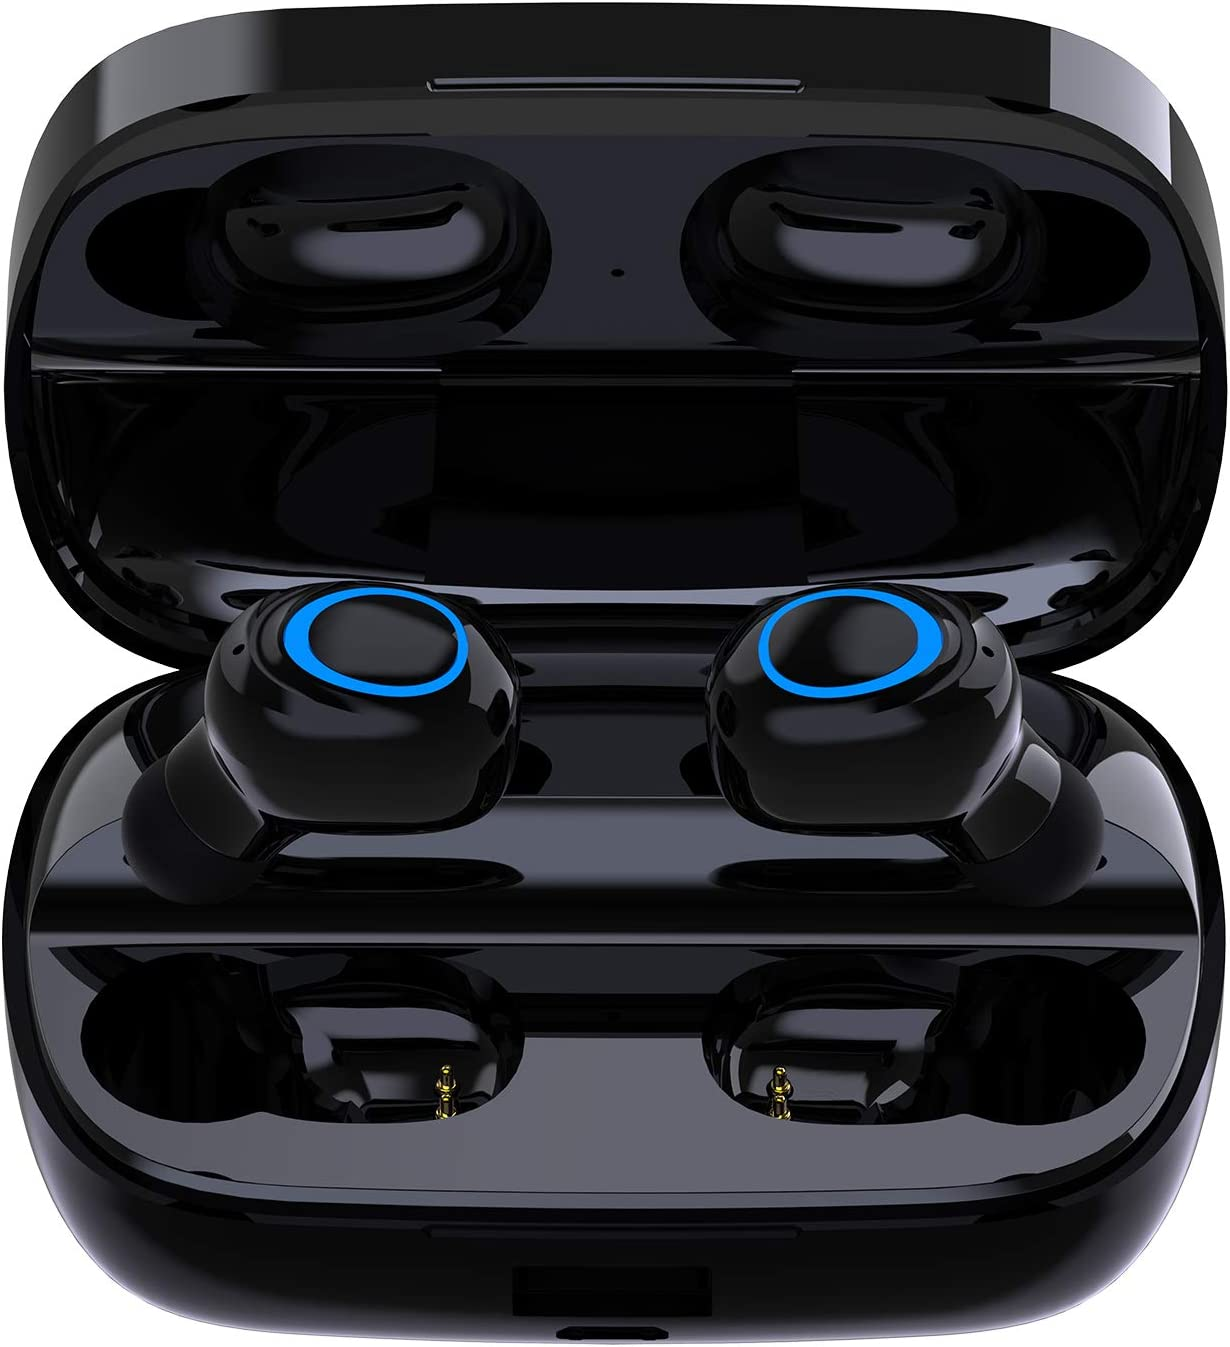 Wireless Earbuds, UNIOJO TWS 3D Stereo Sound Bluetooth Headphones Mini in-Ear Wireless Earphone Built-in Mic, with 1800mAh Charging Case 80 Hrs Playtime